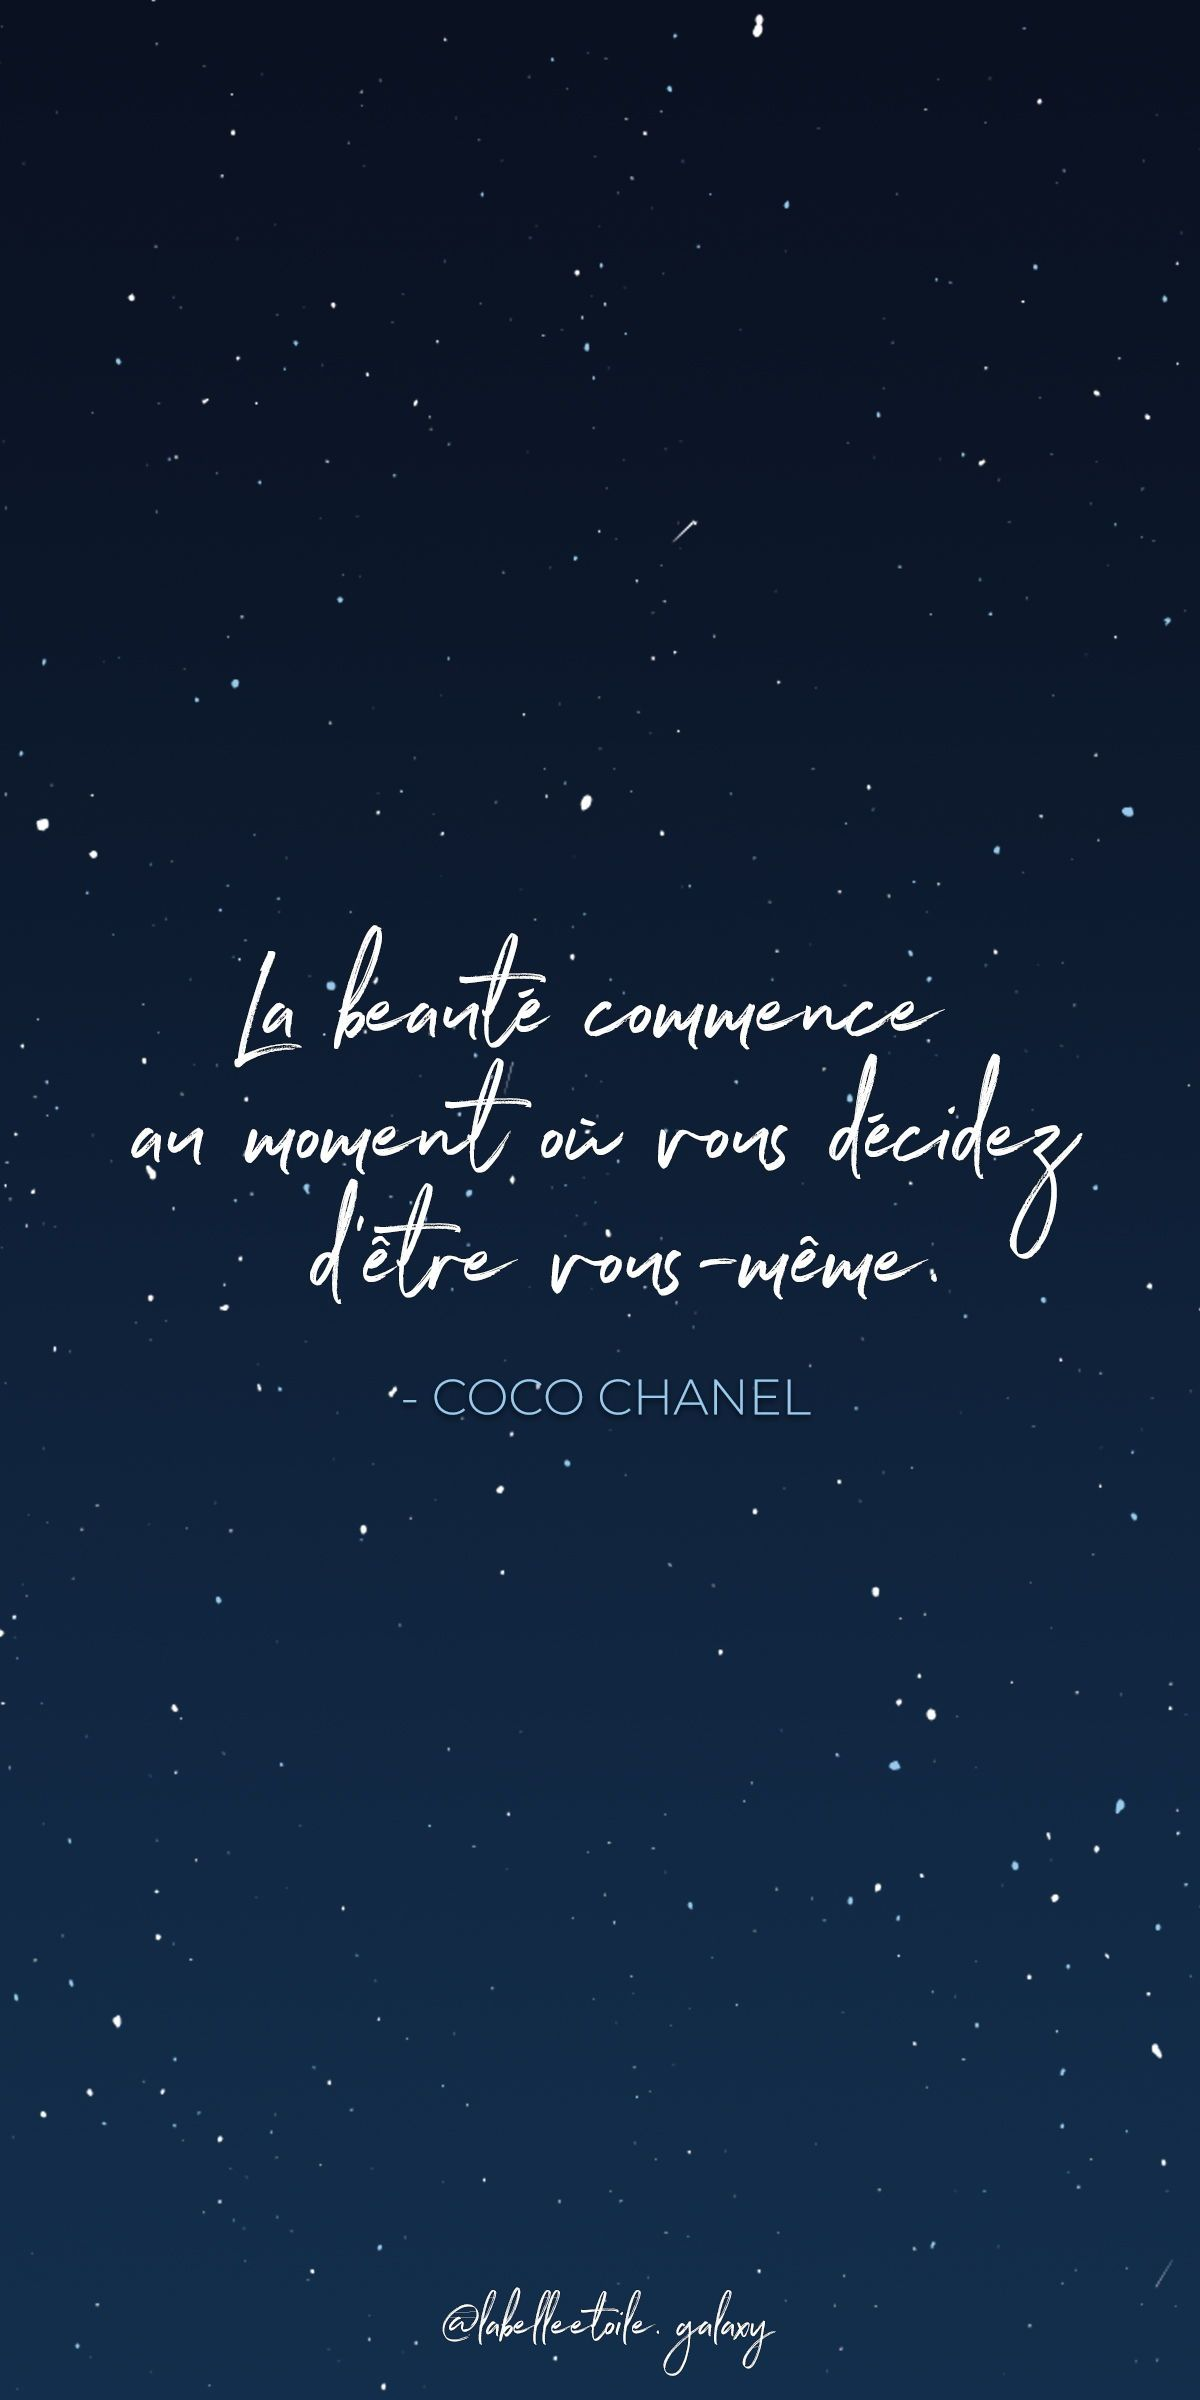 Beauty Begins The Moment You Decide To Be Yourself Coco Chanel French Fashion Designer Bonjour Inspirational French Quotes French Words Paris Quotes